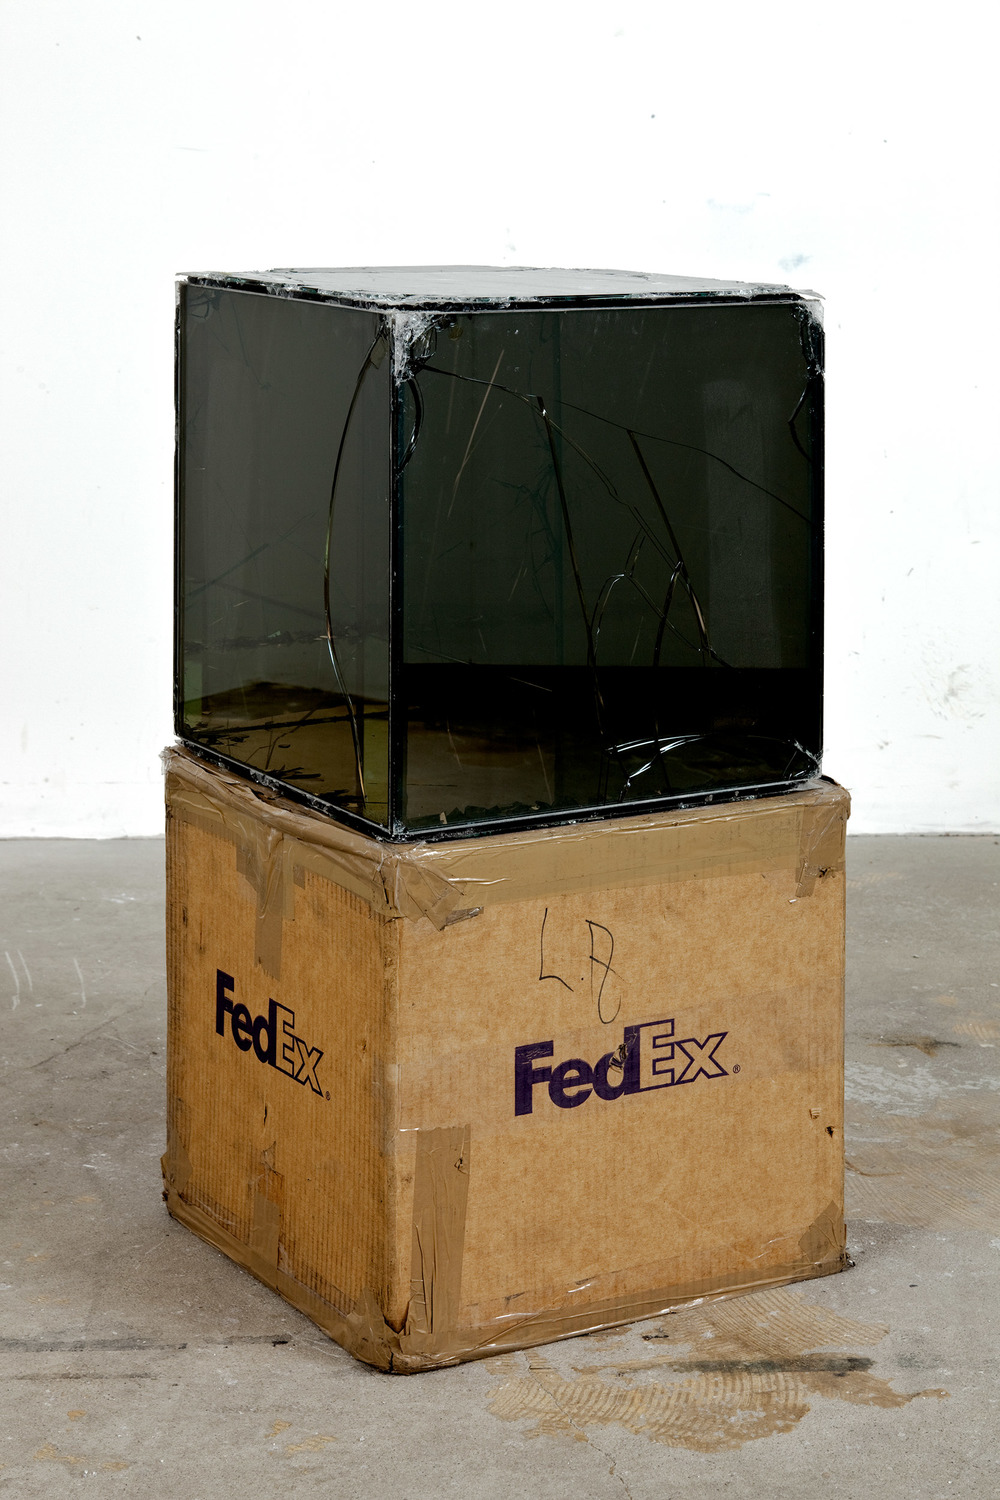 FedEx Kraft Box 2005 FEDEX 330504 10/05 SSCC, Priority Overnight, Los Angeles–Miami trk#865344981314, October 29–30, 2008, Priority Overnight, Miami–Los Angeles trk#861049125089, November 17–18, 2008, Priority Overnight, Los Angeles-Miami Beach trk#860147611241, December 01–02, 2008, Priority Overnight, Miami–Los Angeles trk#867525901310, December 08–09, 2008, Priority Overnight, Los Angeles–Ann Arbor trk#867525901228, March 09–10, 2009, Standard Overnight, Ann Arbor–Los Angeles trk#868274625705, July 09–10, 2009, Standard Overnight, Los Angeles–San Francisco trk#870069766460, August 27–28, 2009, Standard Overnight, San Francisco–Los Angeles trk#870342520112, November 12–13, 2009    2008   Laminated Mirropane, FedEx shipping box, accrued FedEx shipping and tracking labels, silicone, metal, and tape  16 x 16 x 16 inches   FedEx Glass Works, 2007–